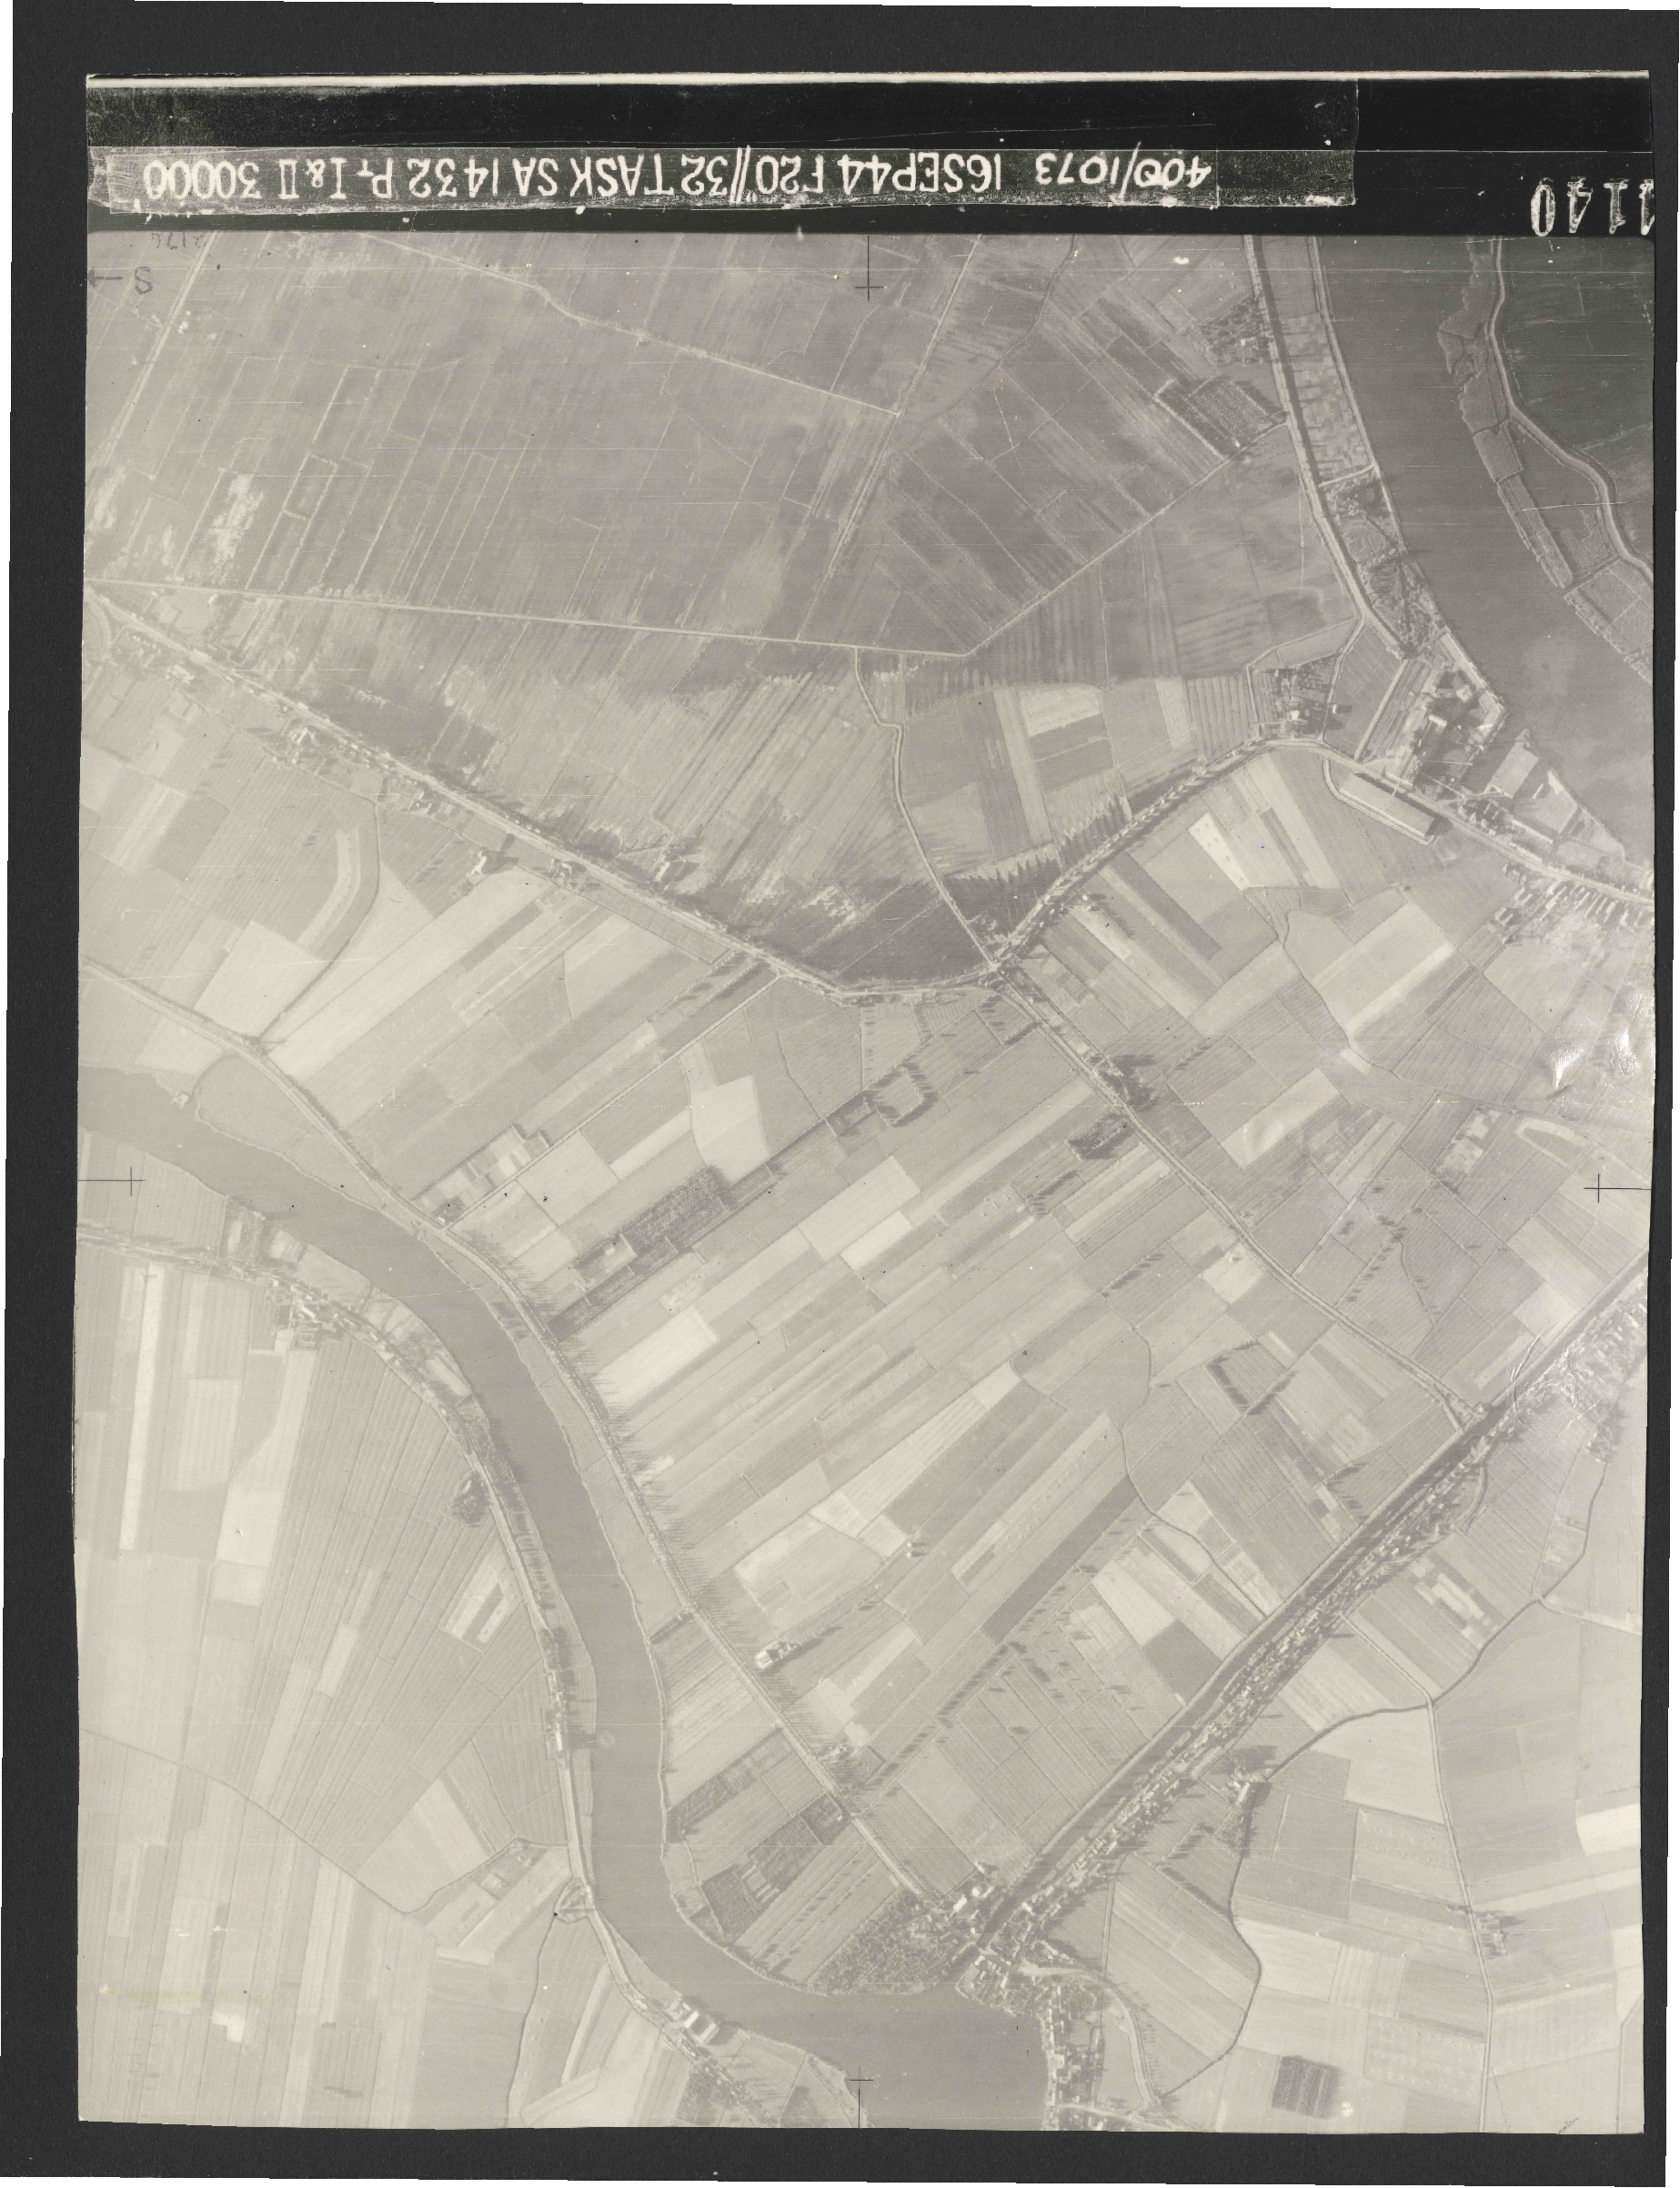 Collection RAF aerial photos 1940-1945 - flight 013, run 02, photo 4140